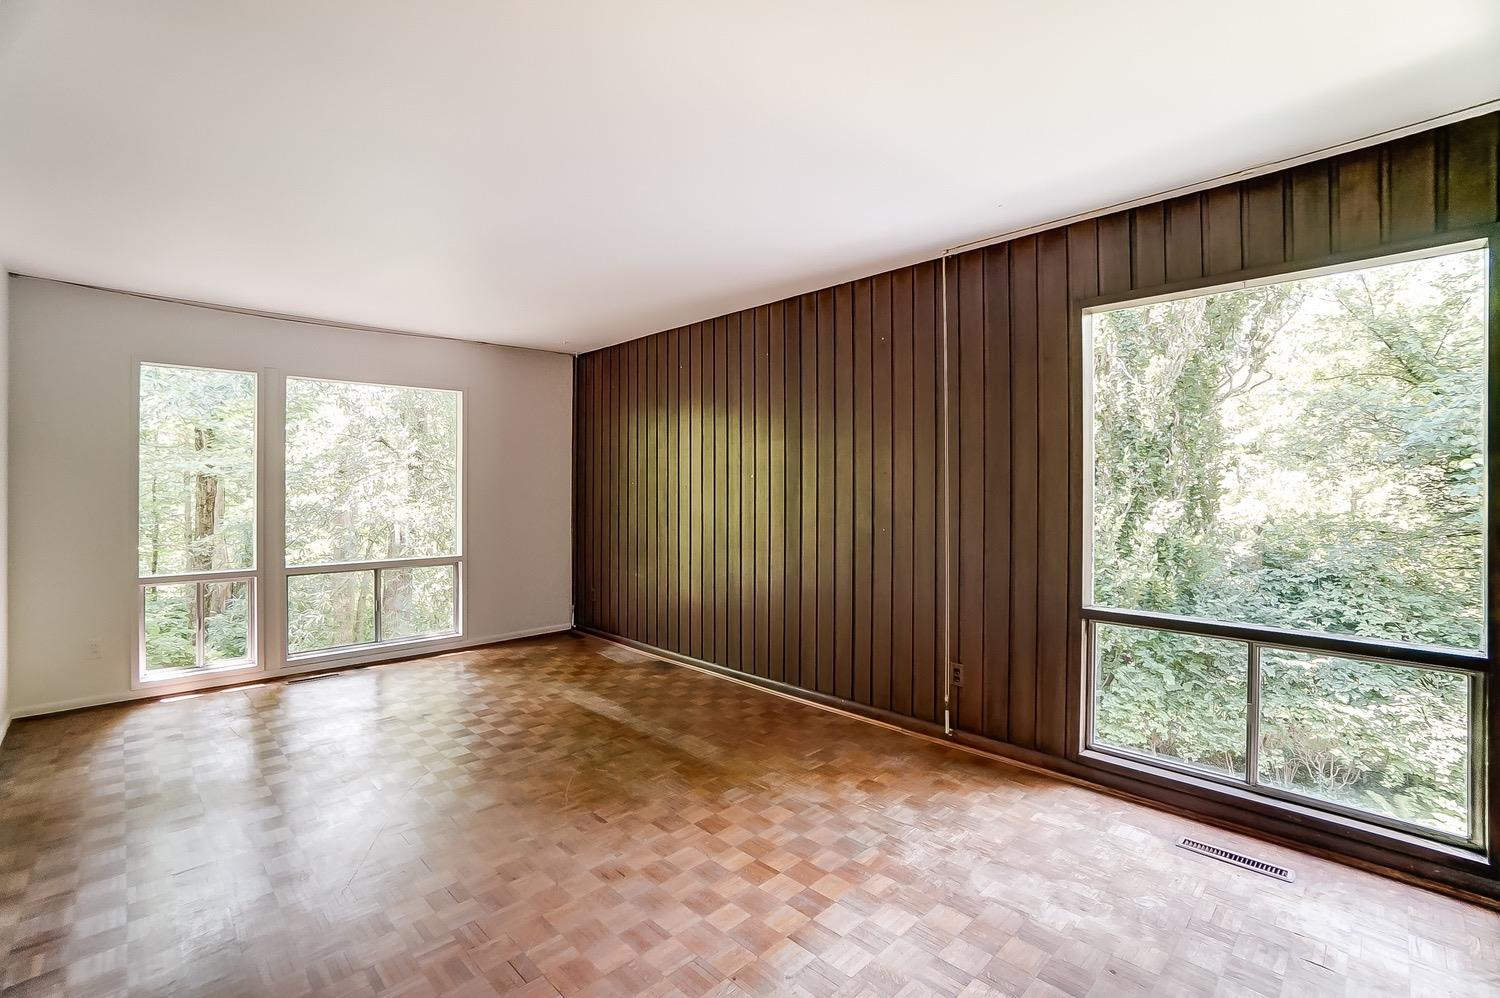 Bedroom features a wood paneled wall and could be used as an office or study.